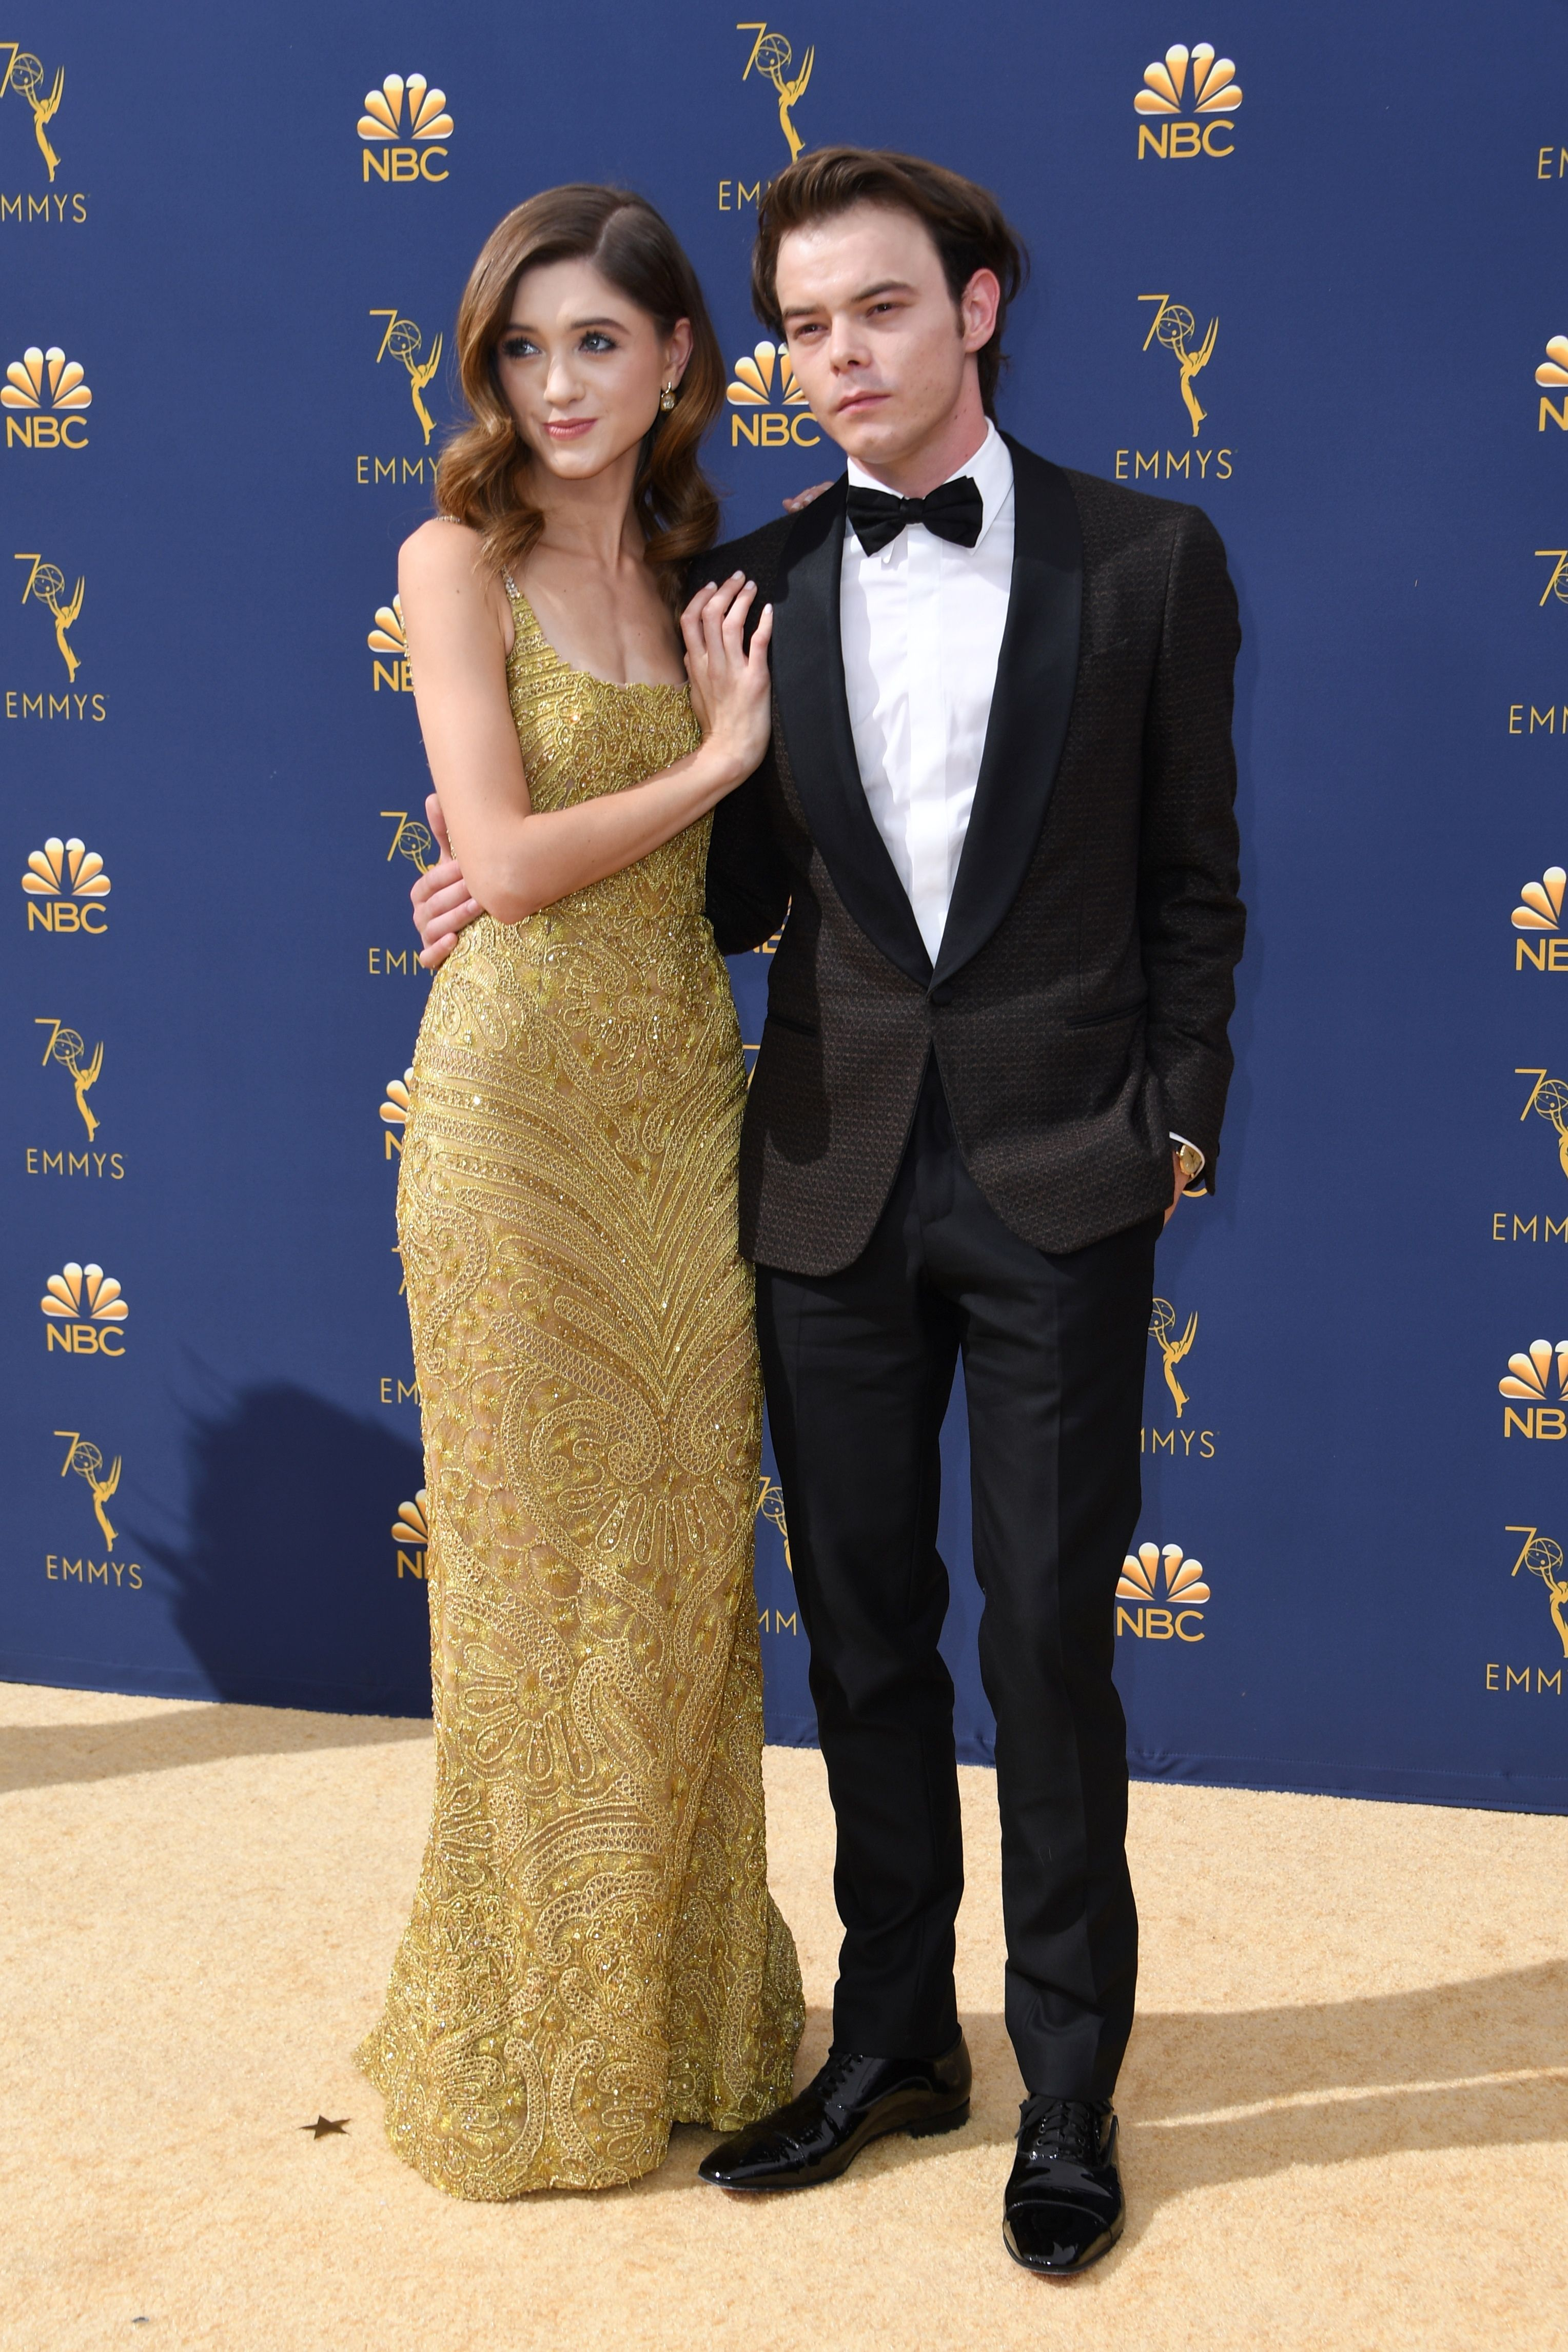 Natalia Dyer and Charlie Heaton Emmys 2018